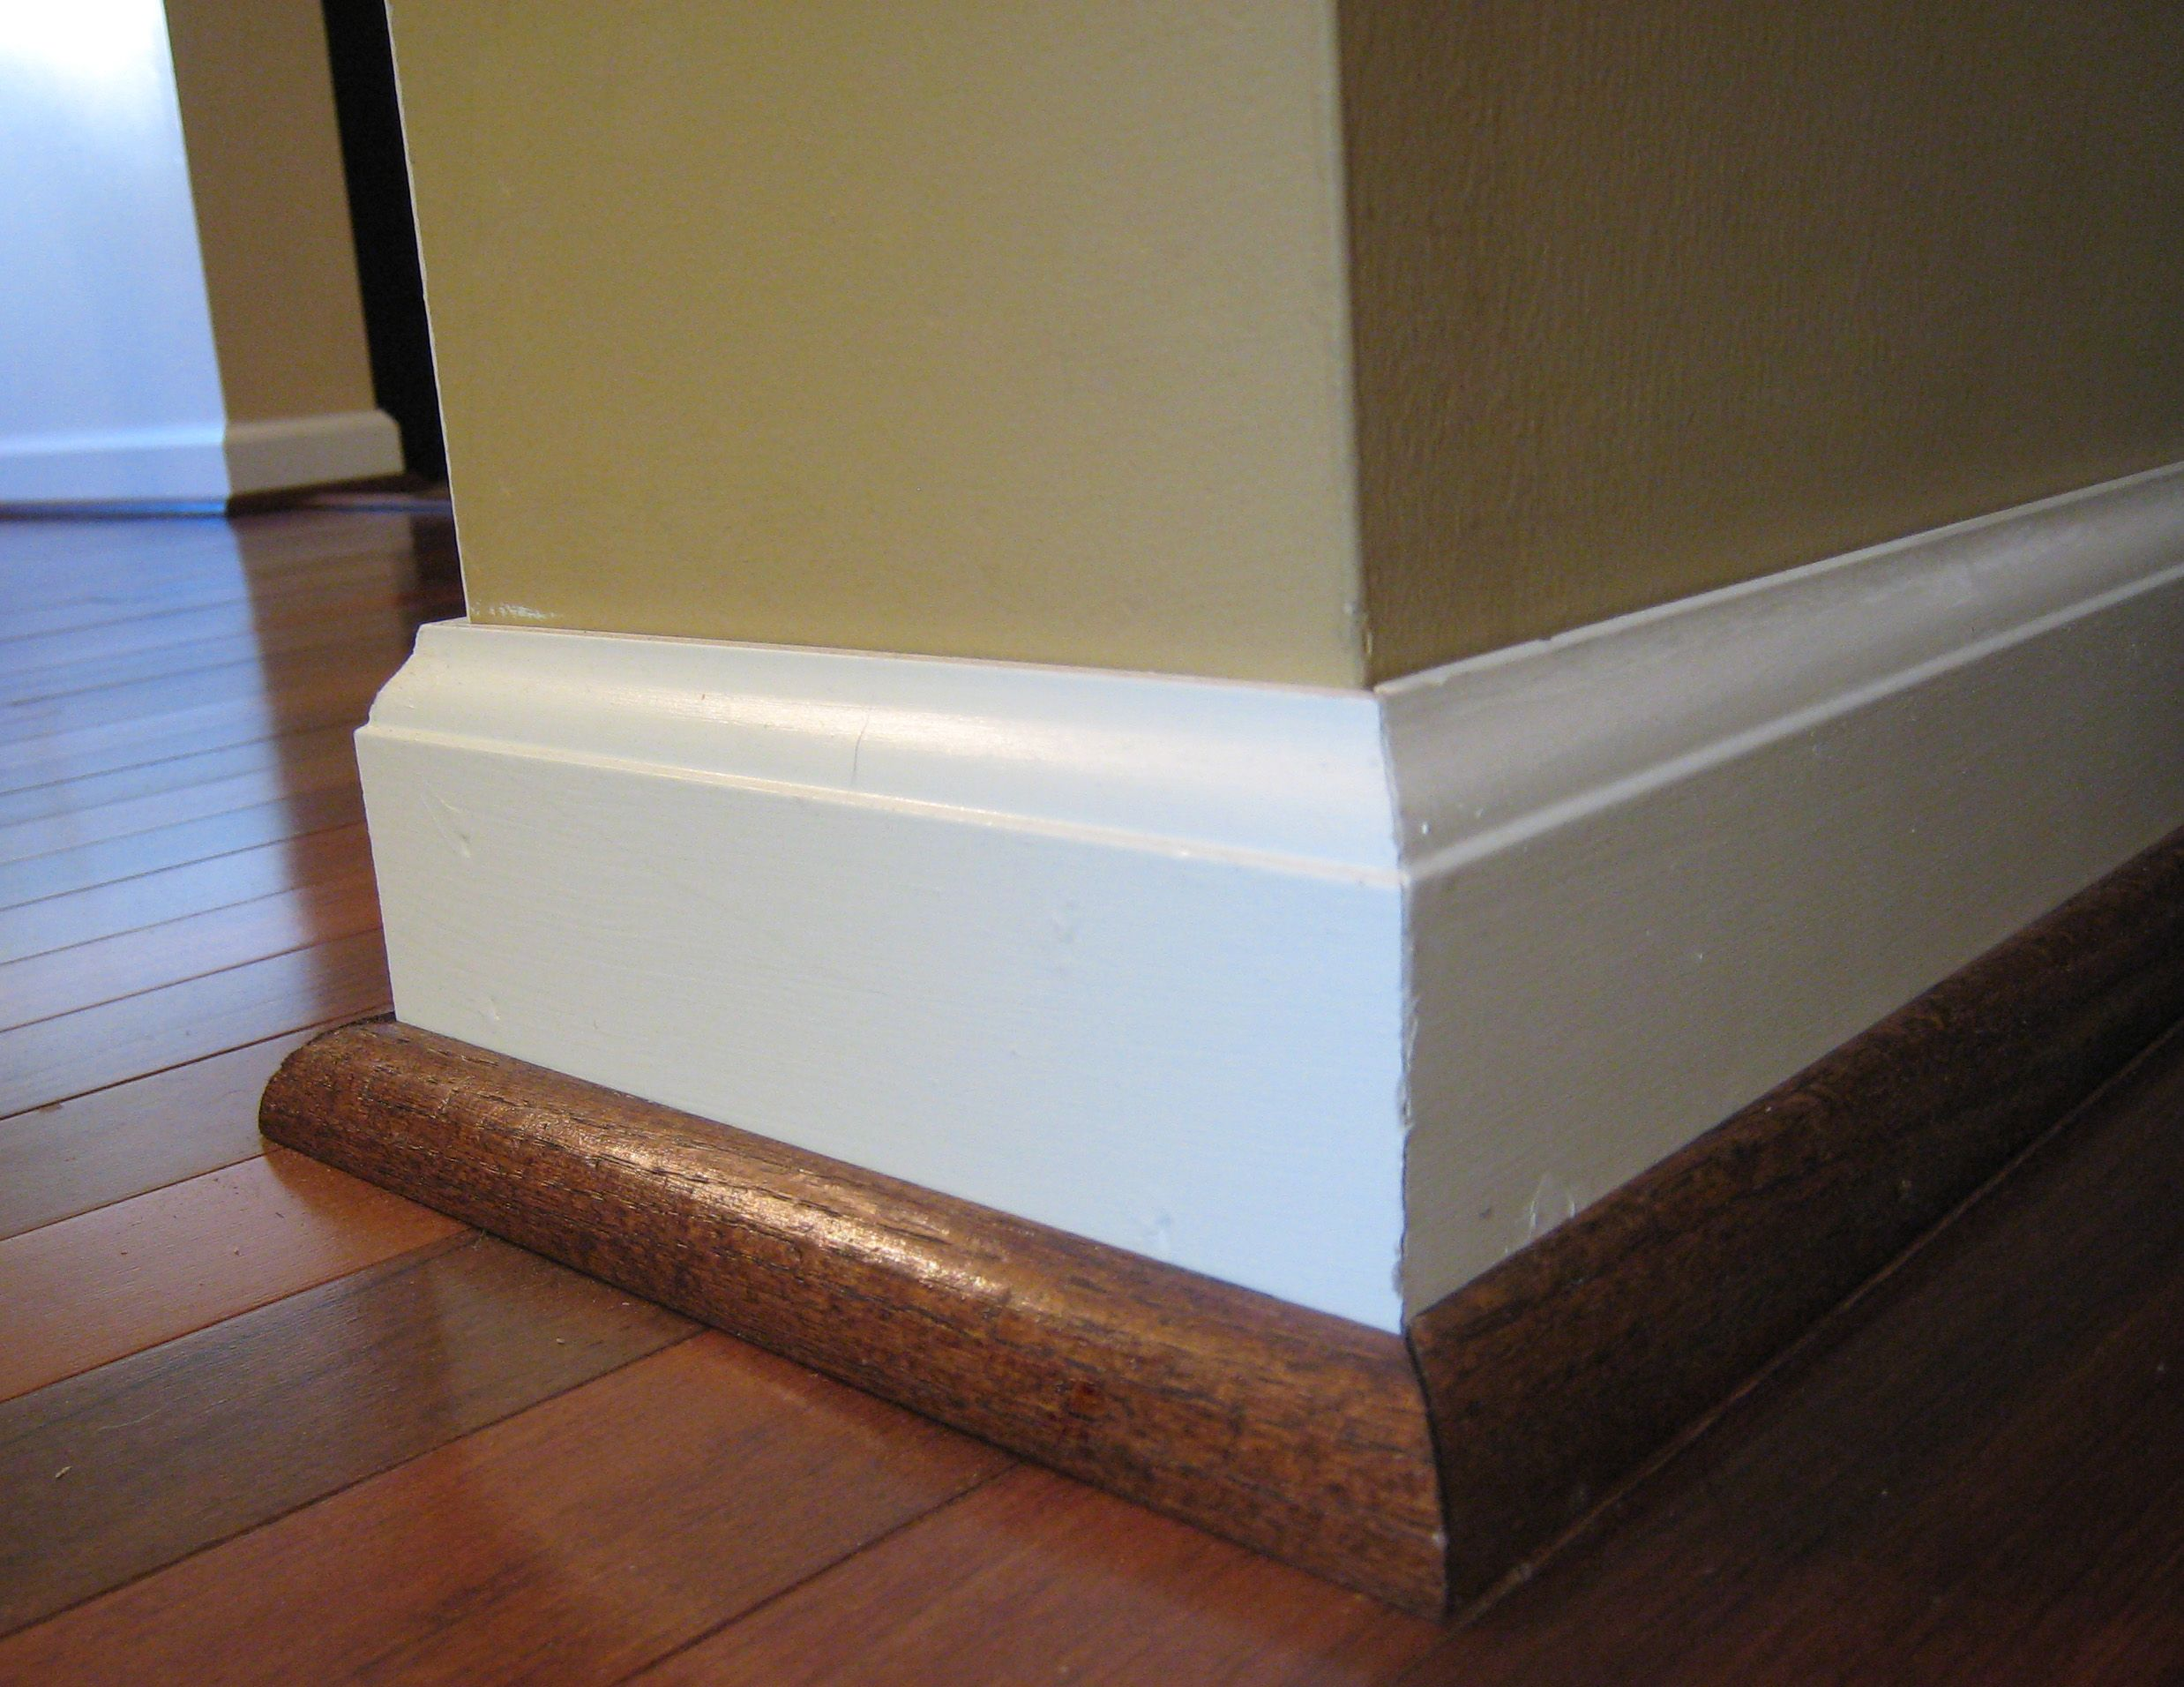 How to cut base molding in place - Picture Of Baseboard Styles And Molding